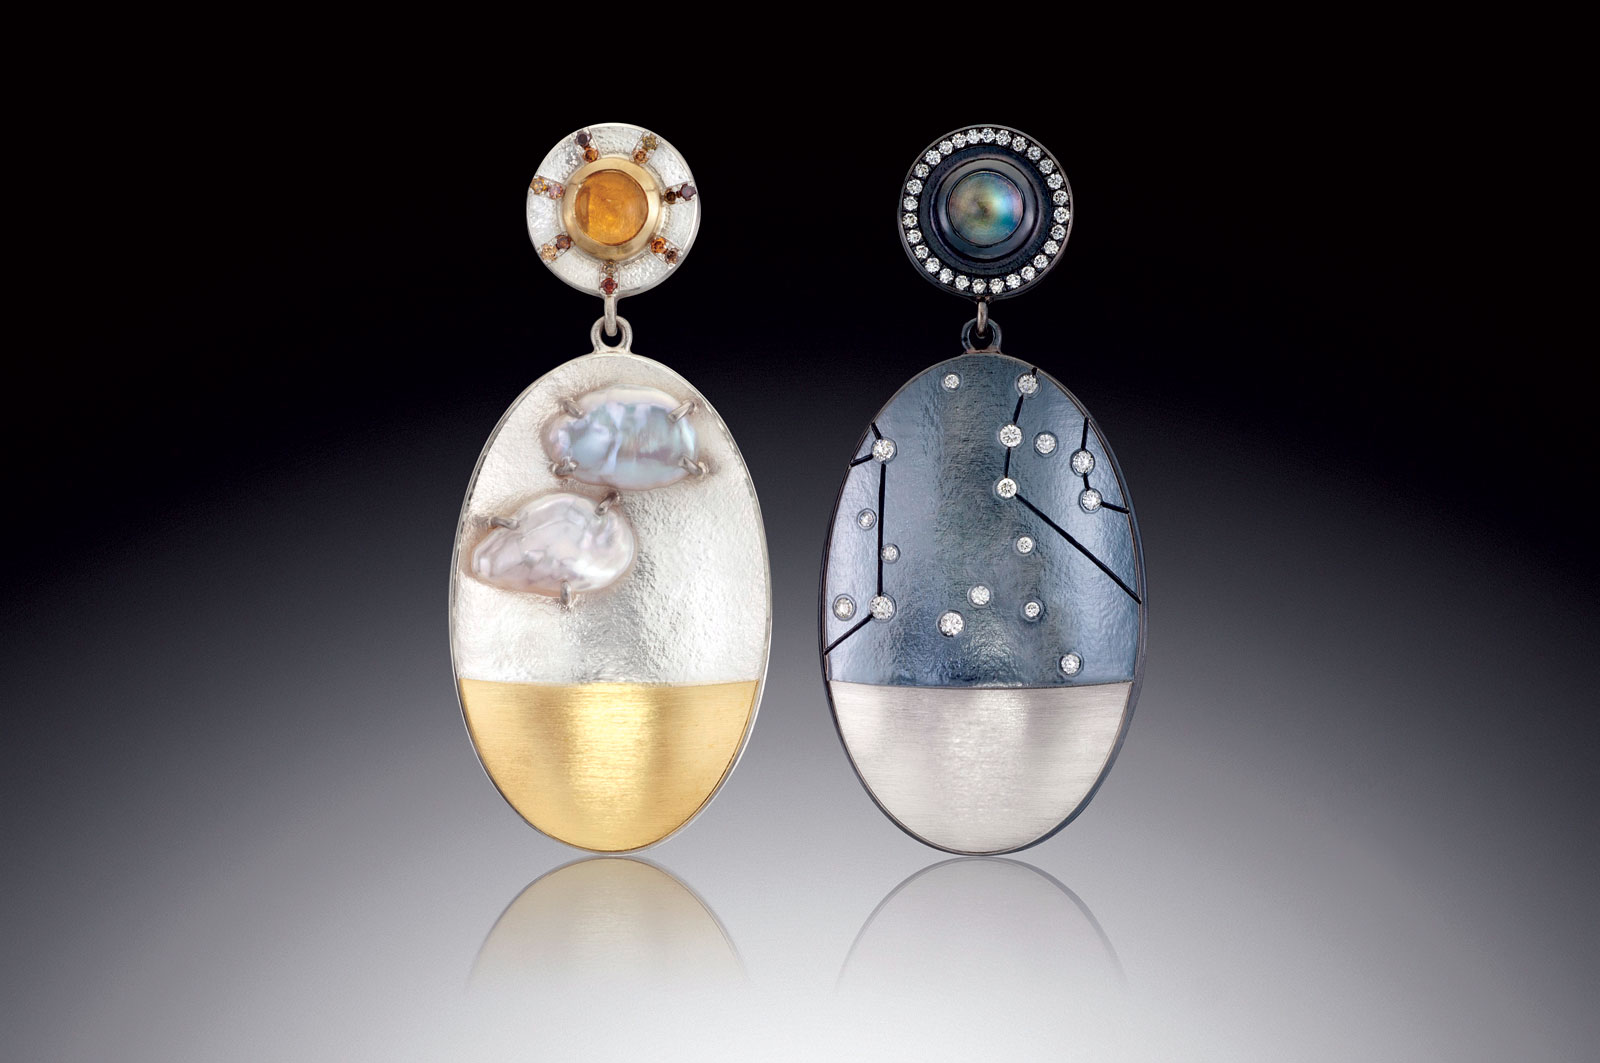 "DAY/NIGHT EARRINGS WITH CLOUDS of oxidized sterling, fine silver, eighteen karat yellow gold, pure palladium, keshi pearls, citrine, natural diamonds, rainbow moonstone, white diamonds, 2.5 x 8.0 x 2.2 centimeters, 2017. ""The Day Earring features keshi pearls for clouds which are prong set over a gold landscape. The citrine sun shines above with natural diamond rays. The Night Earring features white diamonds set accurate to an actual star map with hand-engraved constellation lines."""